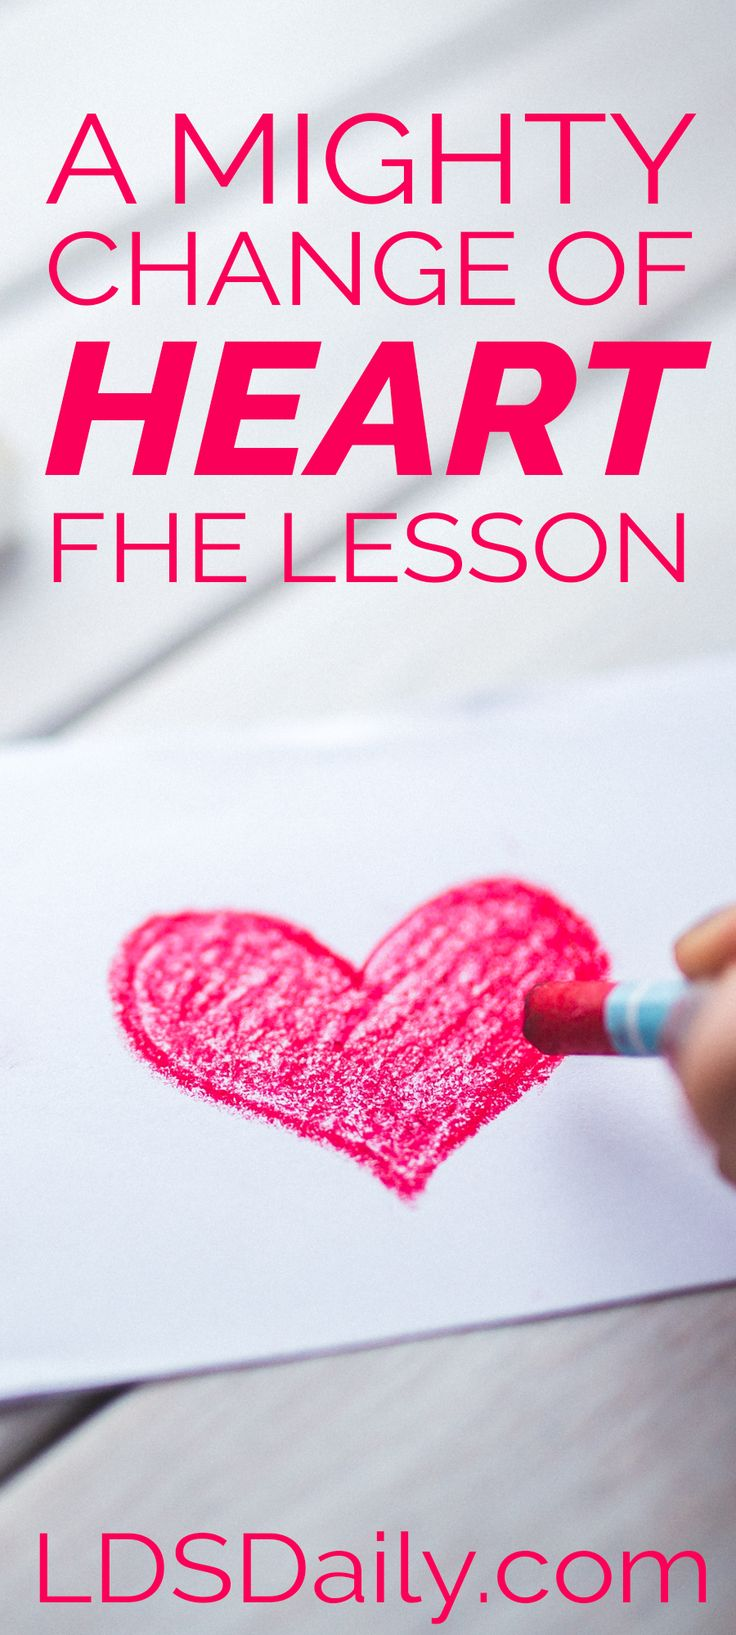 A Mighty Change of Heart FHE Lesson | All about how we can experience and maintain a mighty change of heart. | Valentine's Day FHE Lesson | Family Home Evening Lesson